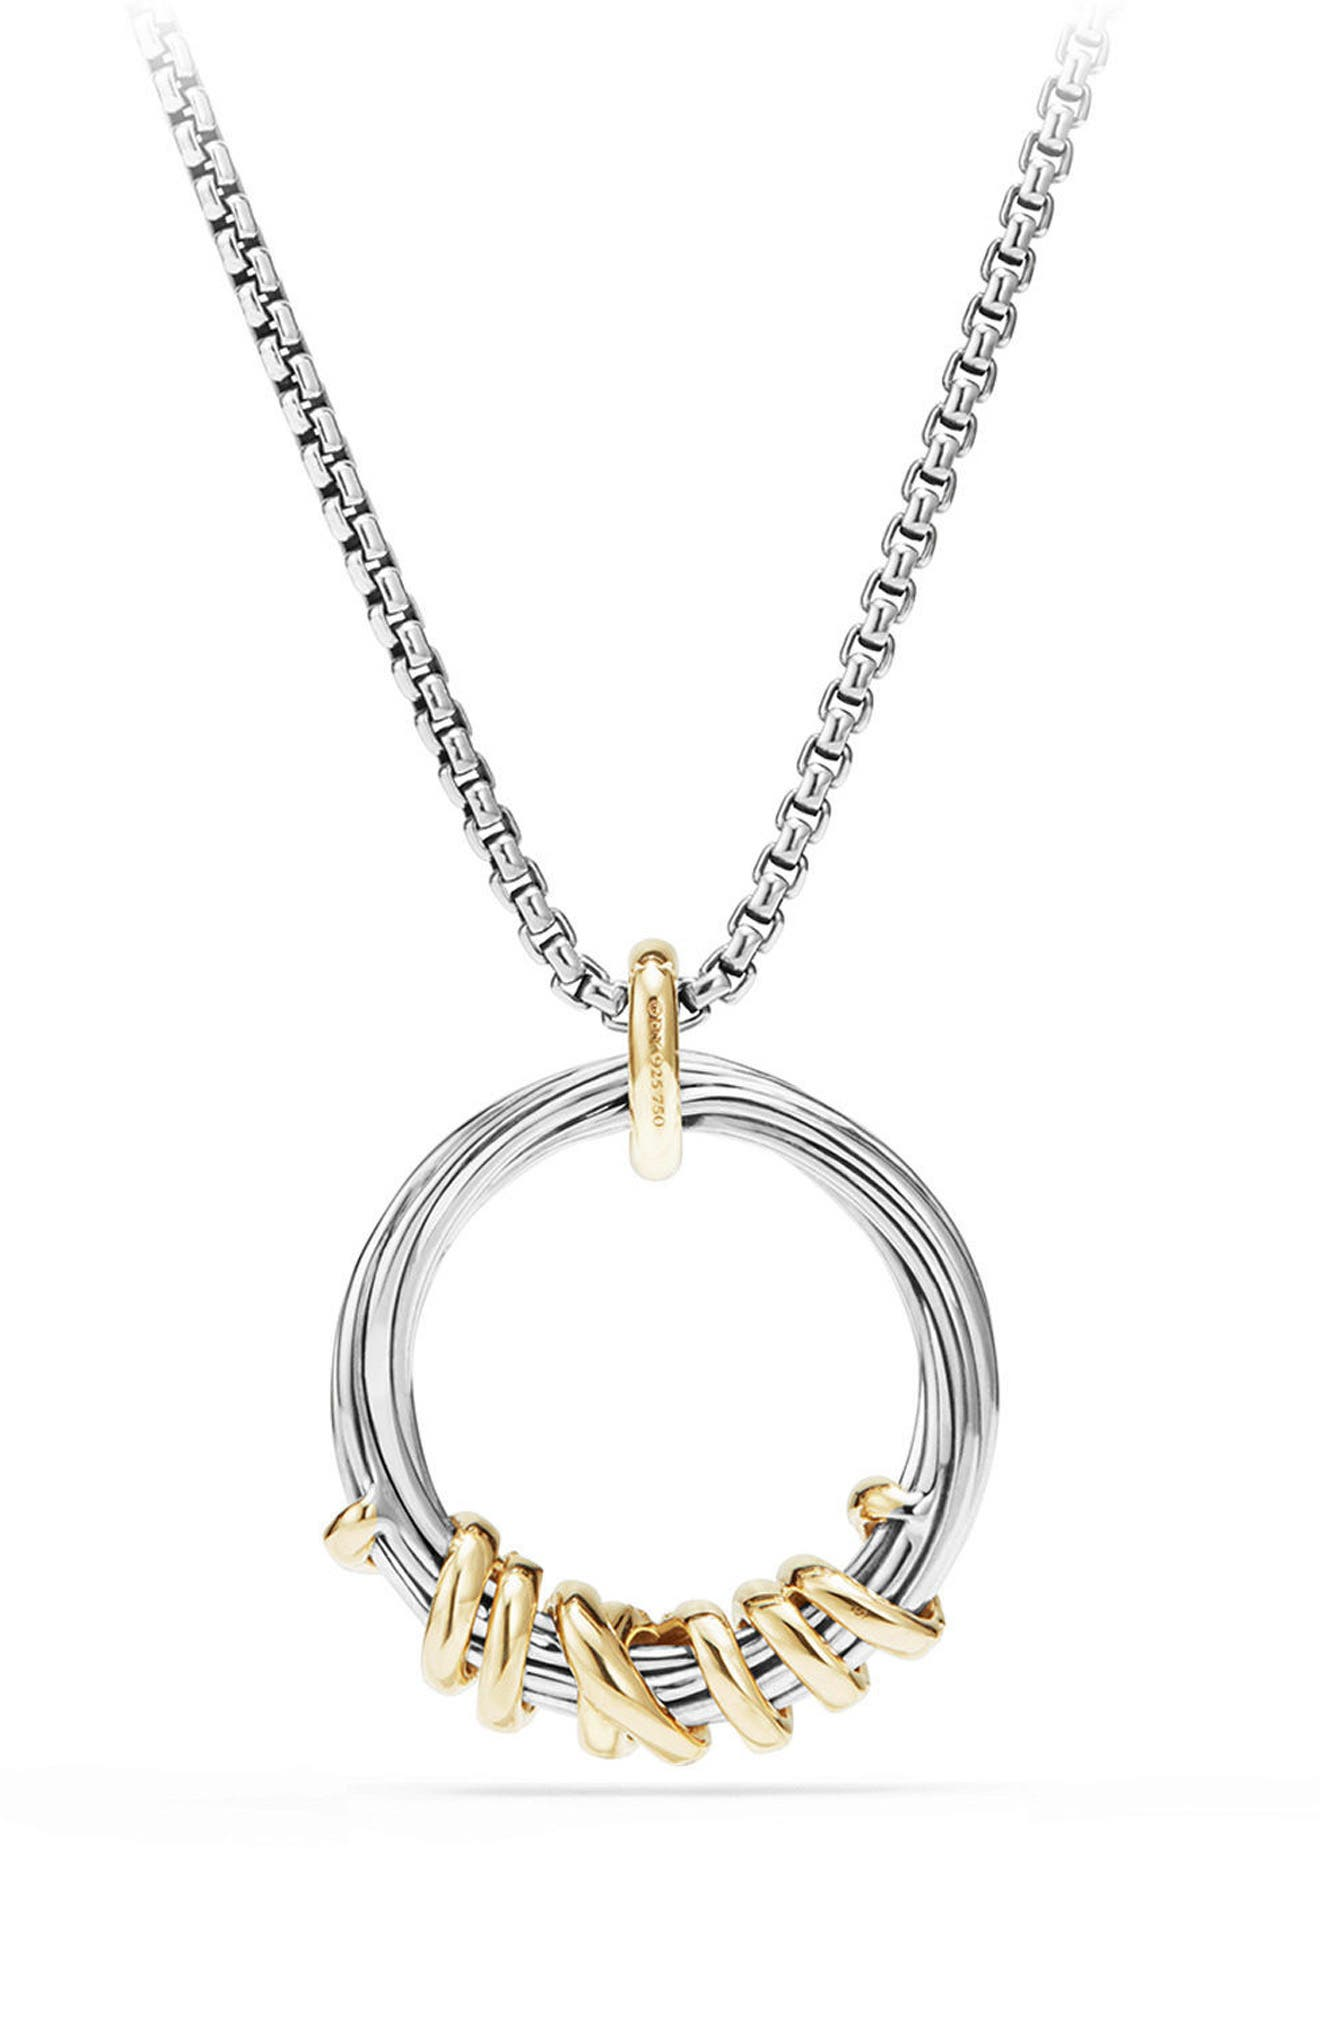 Helena Medium Pendant Necklace with Diamonds & 18K Gold,                             Alternate thumbnail 3, color,                             SILVER/ GOLD